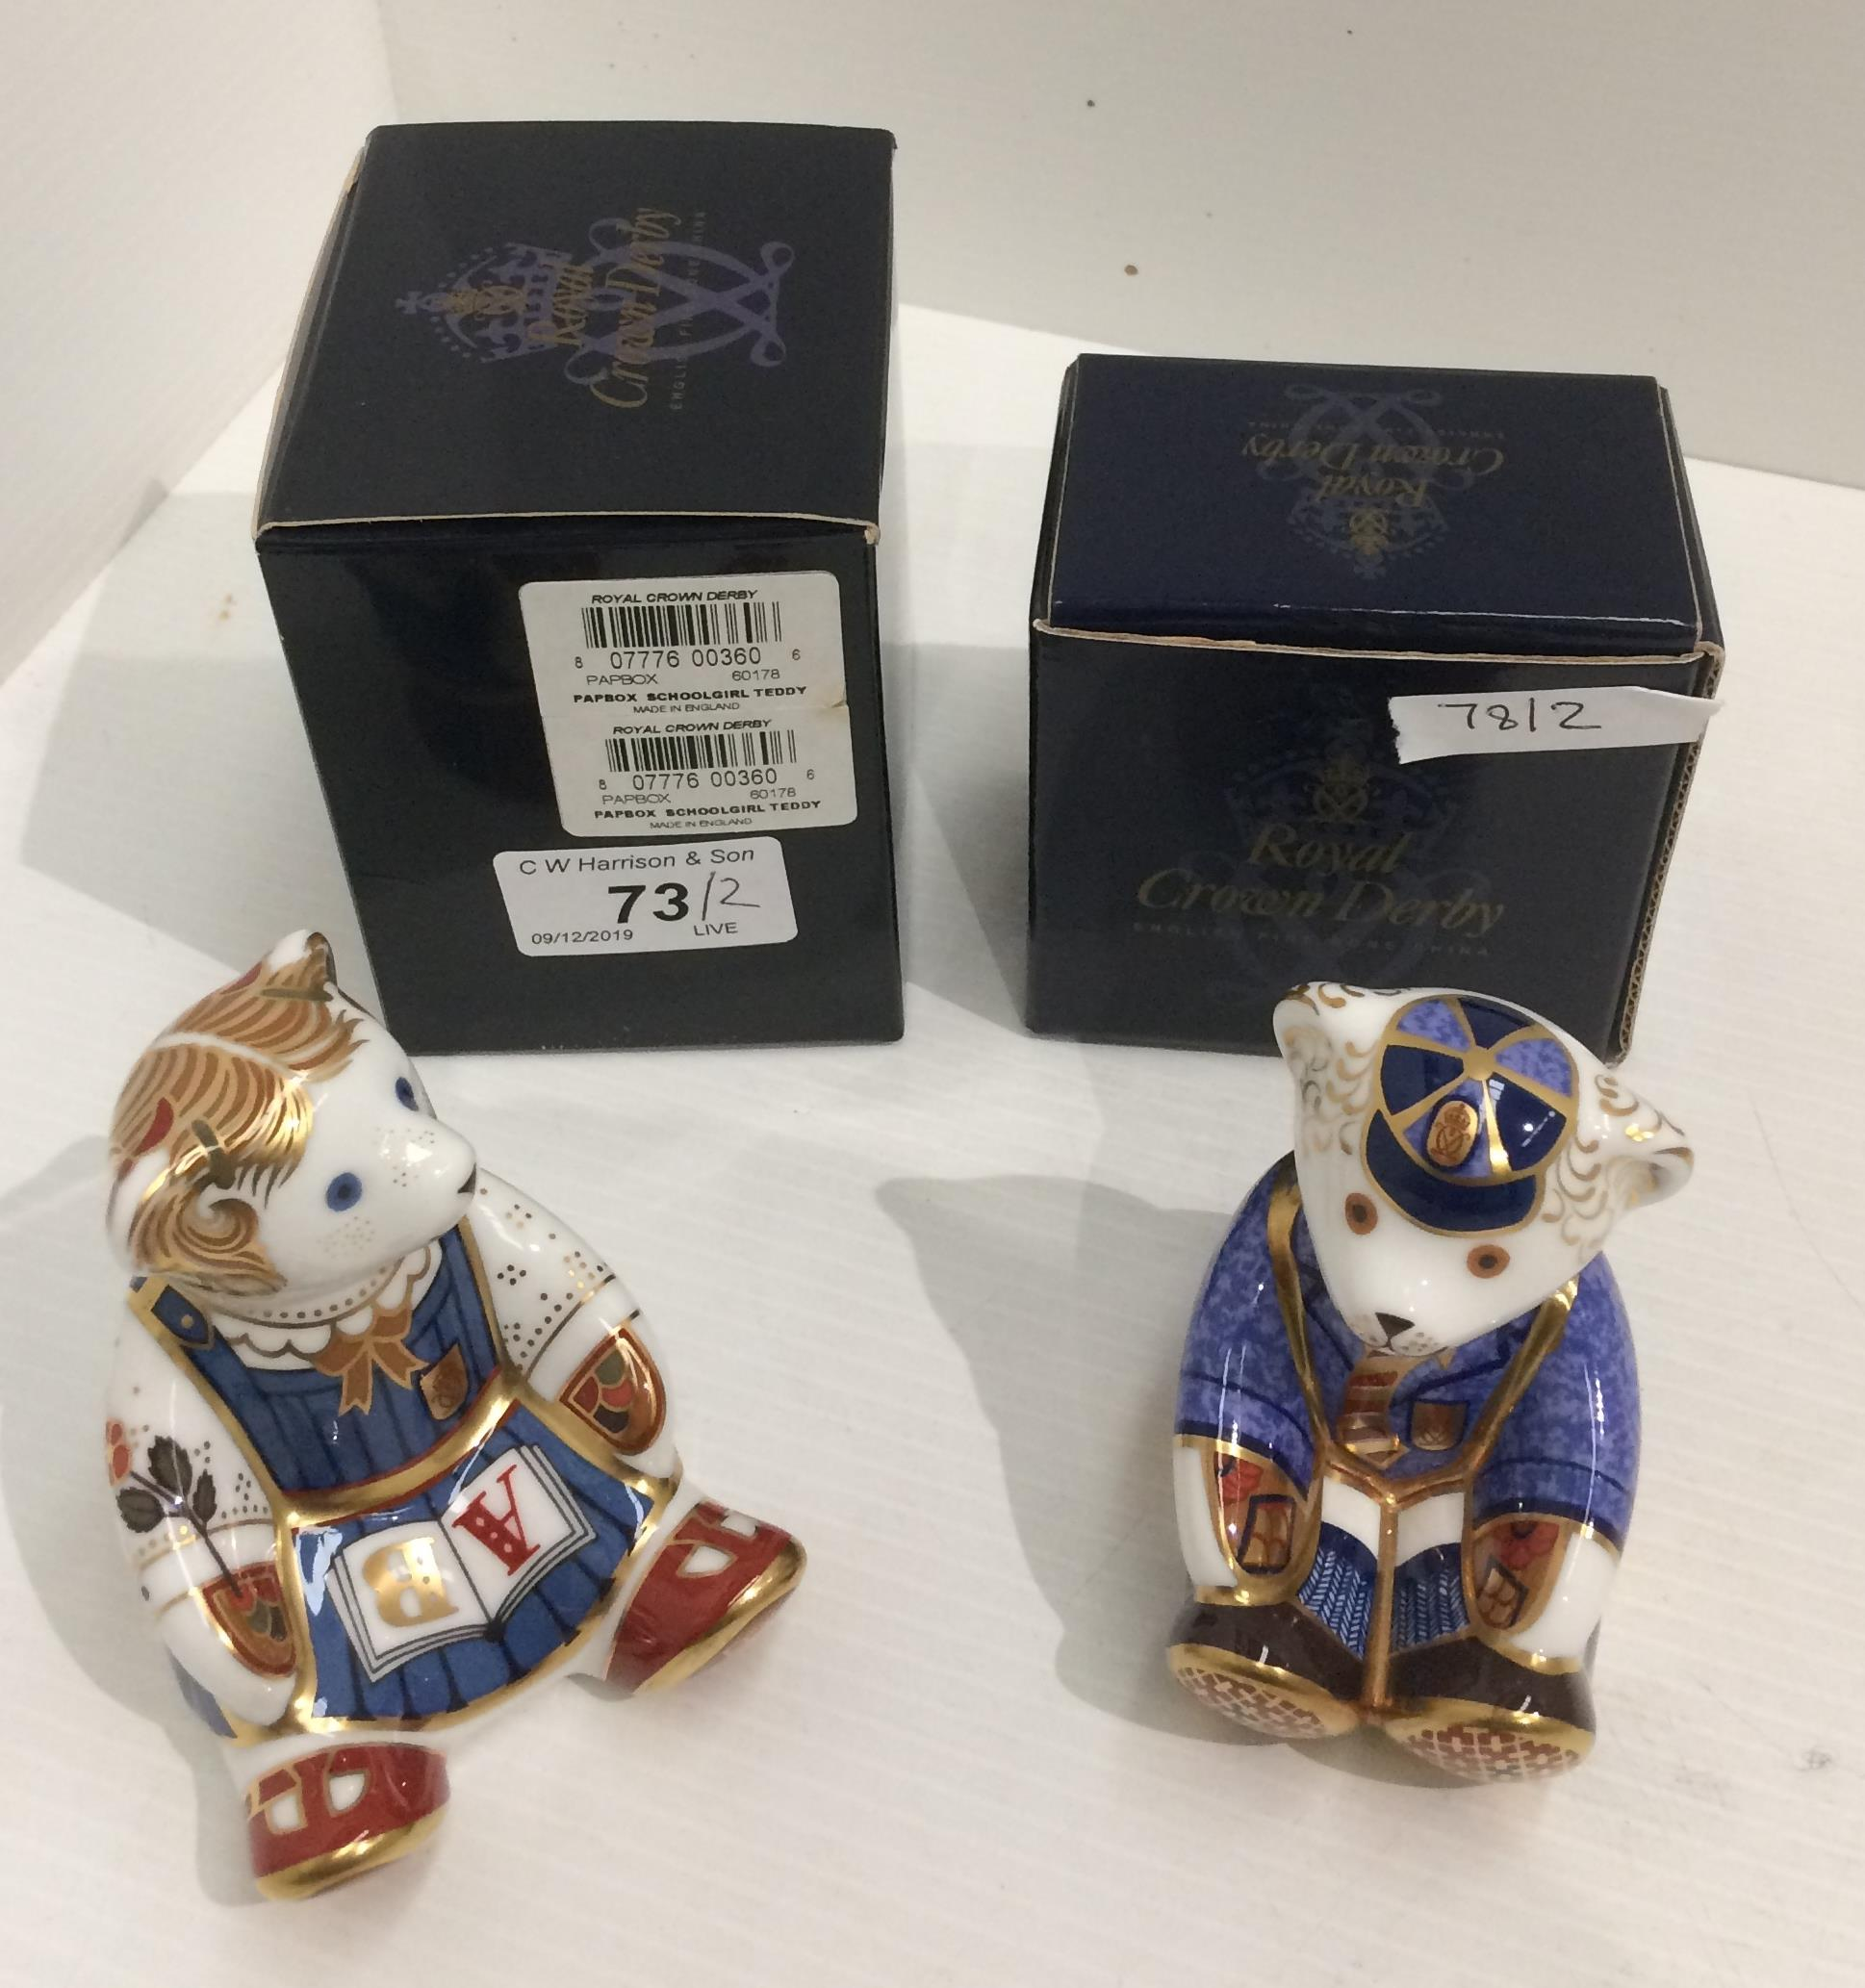 Lot 73 - Two Royal Crown Derby bone china paperweights - Schoolboy Teddy and Schoolgirl Teddy, both 8.